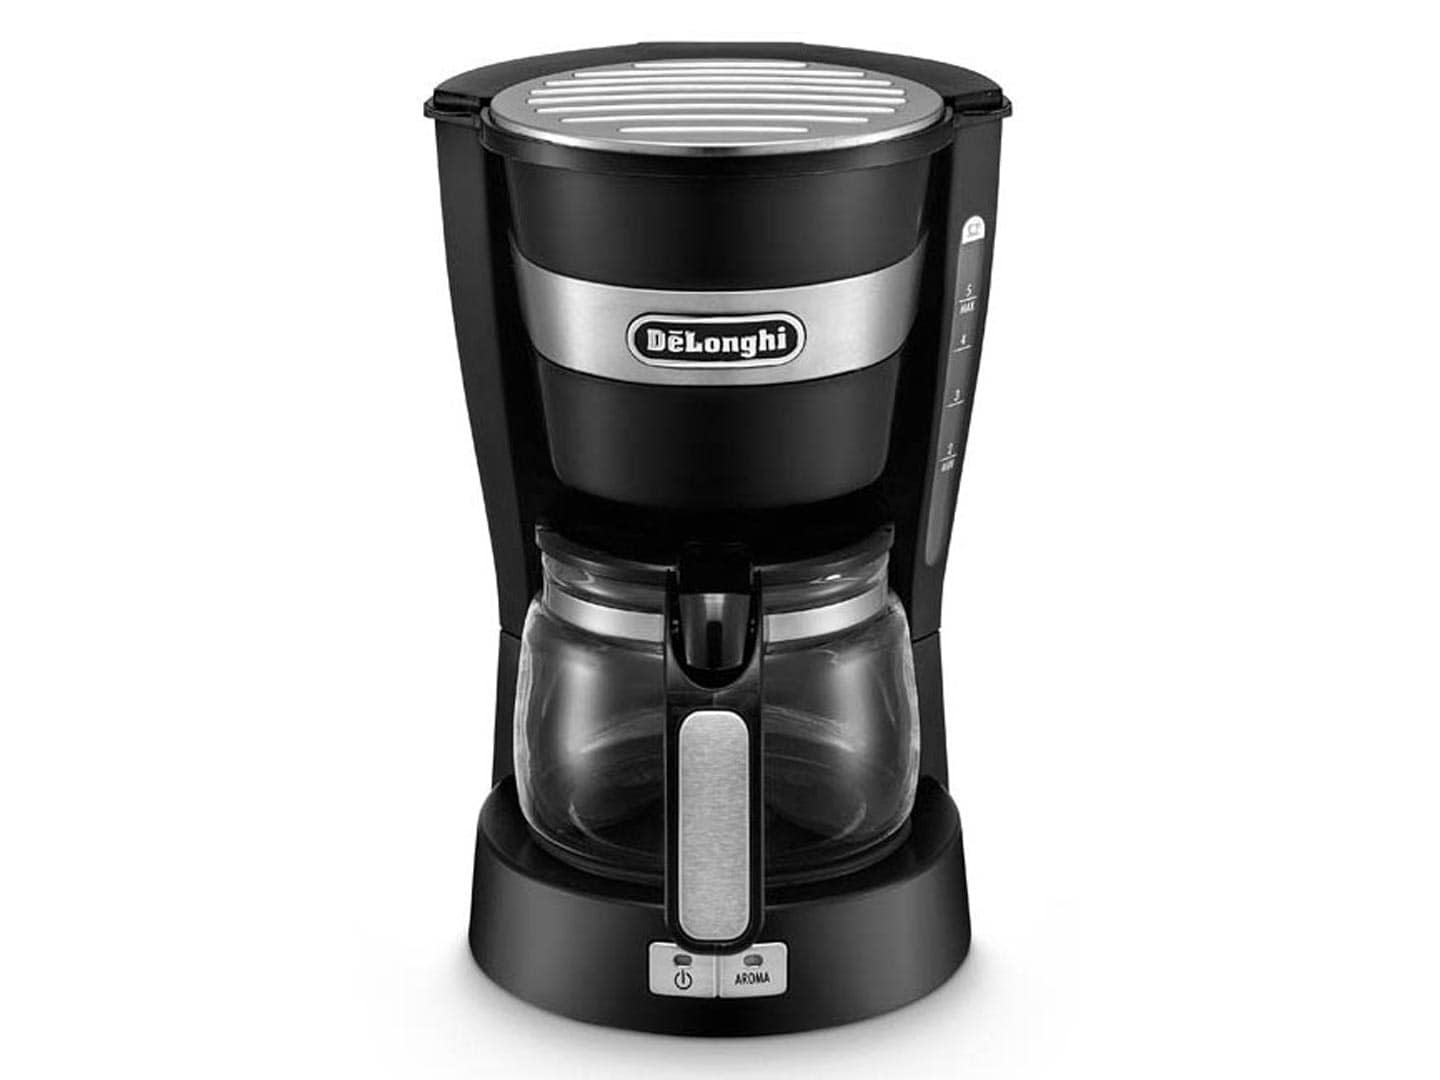 Icm 14011 Drip Coffee Makers Delonghi Philippines